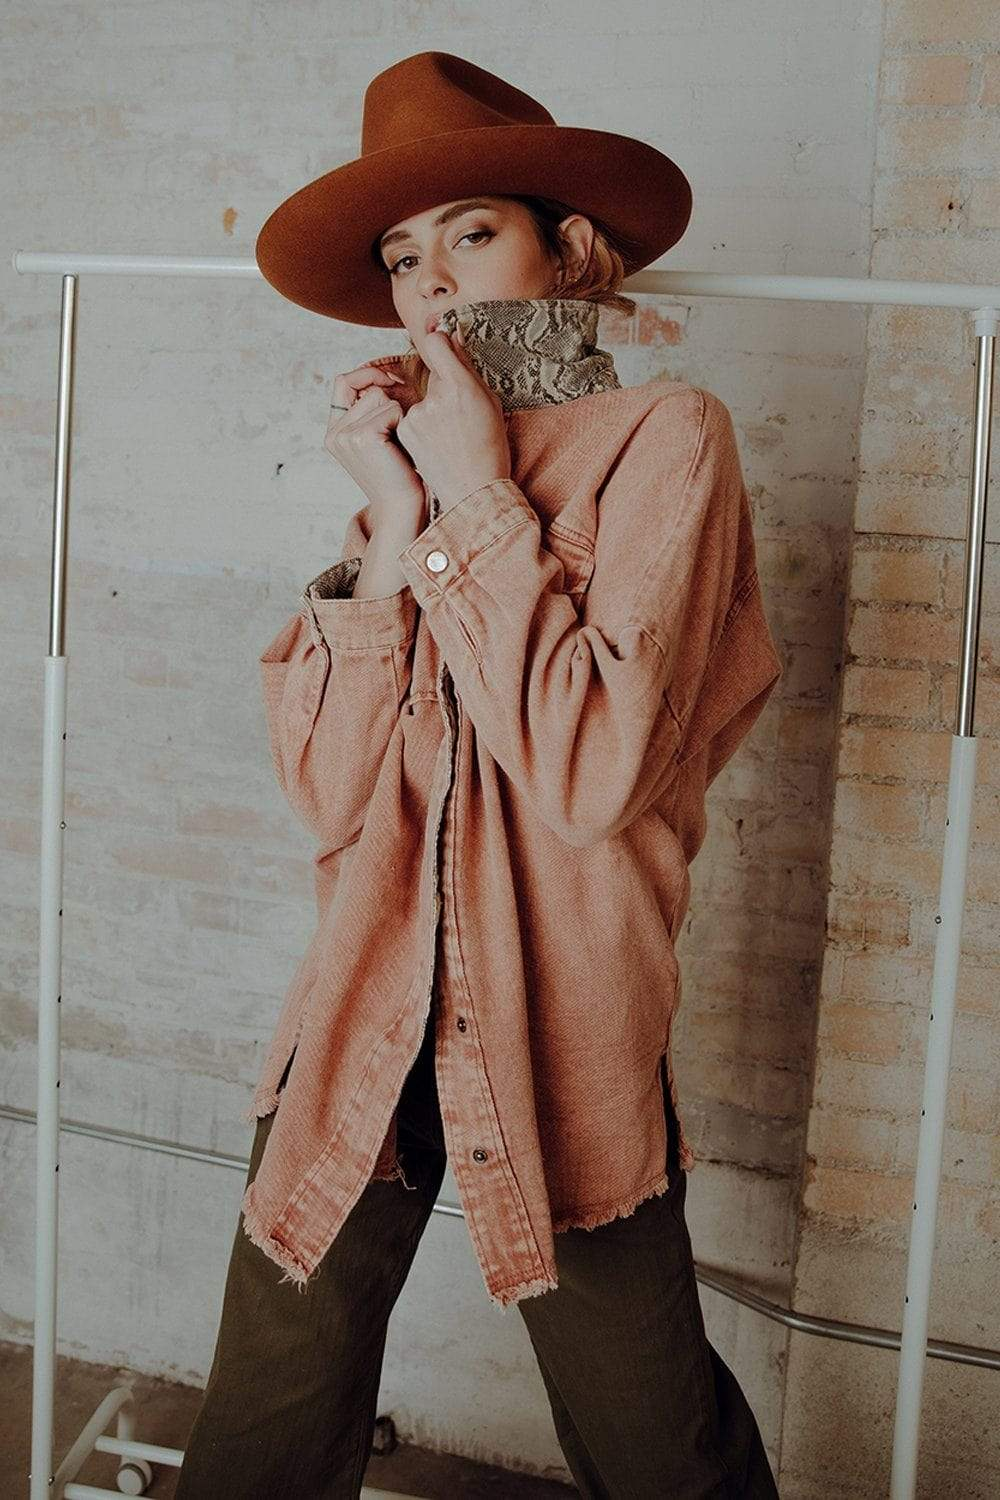 Counting Down Oversized Denim Jacket in Cinnamon Top n/a Clad and Cloth